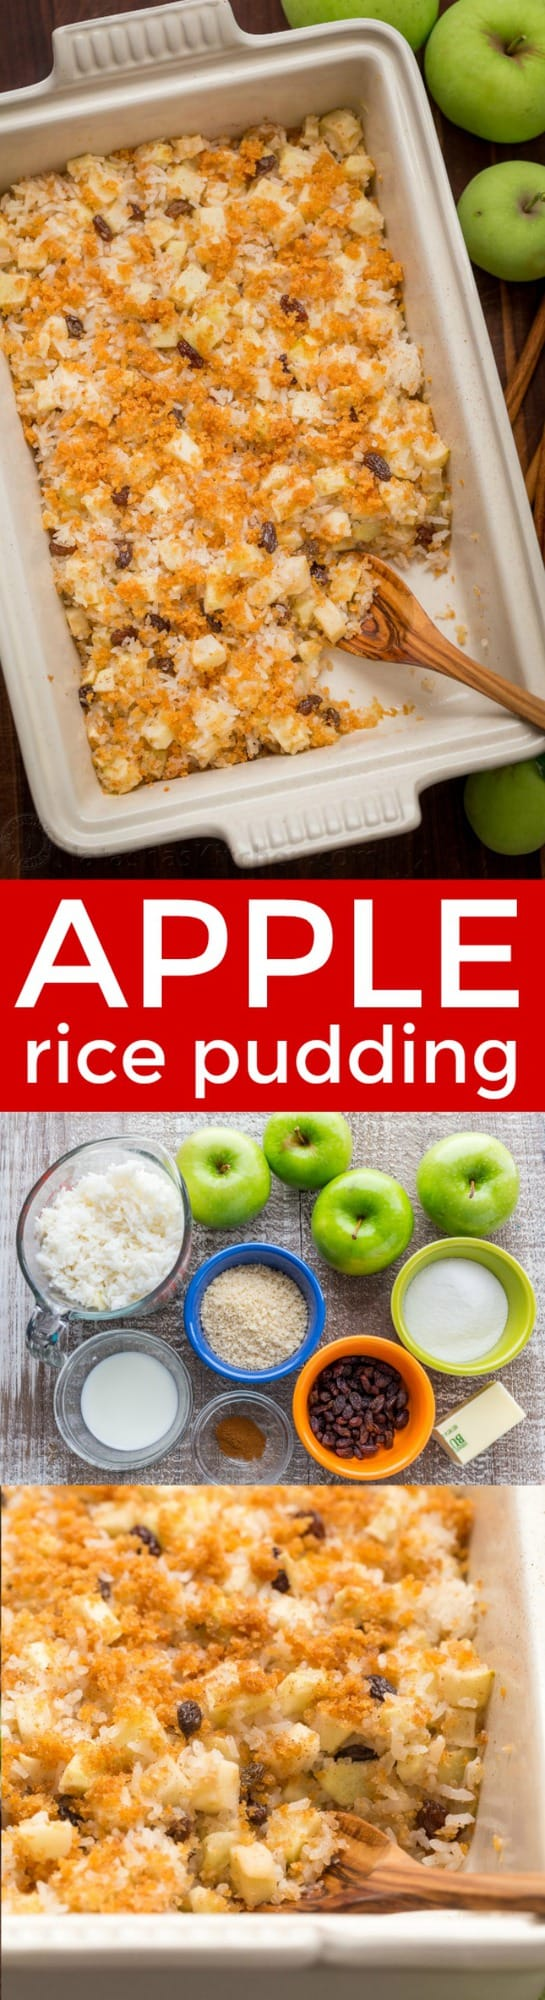 Apple rice pudding is Autumn comfort food. It is loaded with apples, cinnamon and a browned butter crunchy topping. A great way to use leftover white rice! | natashaskitchen.com